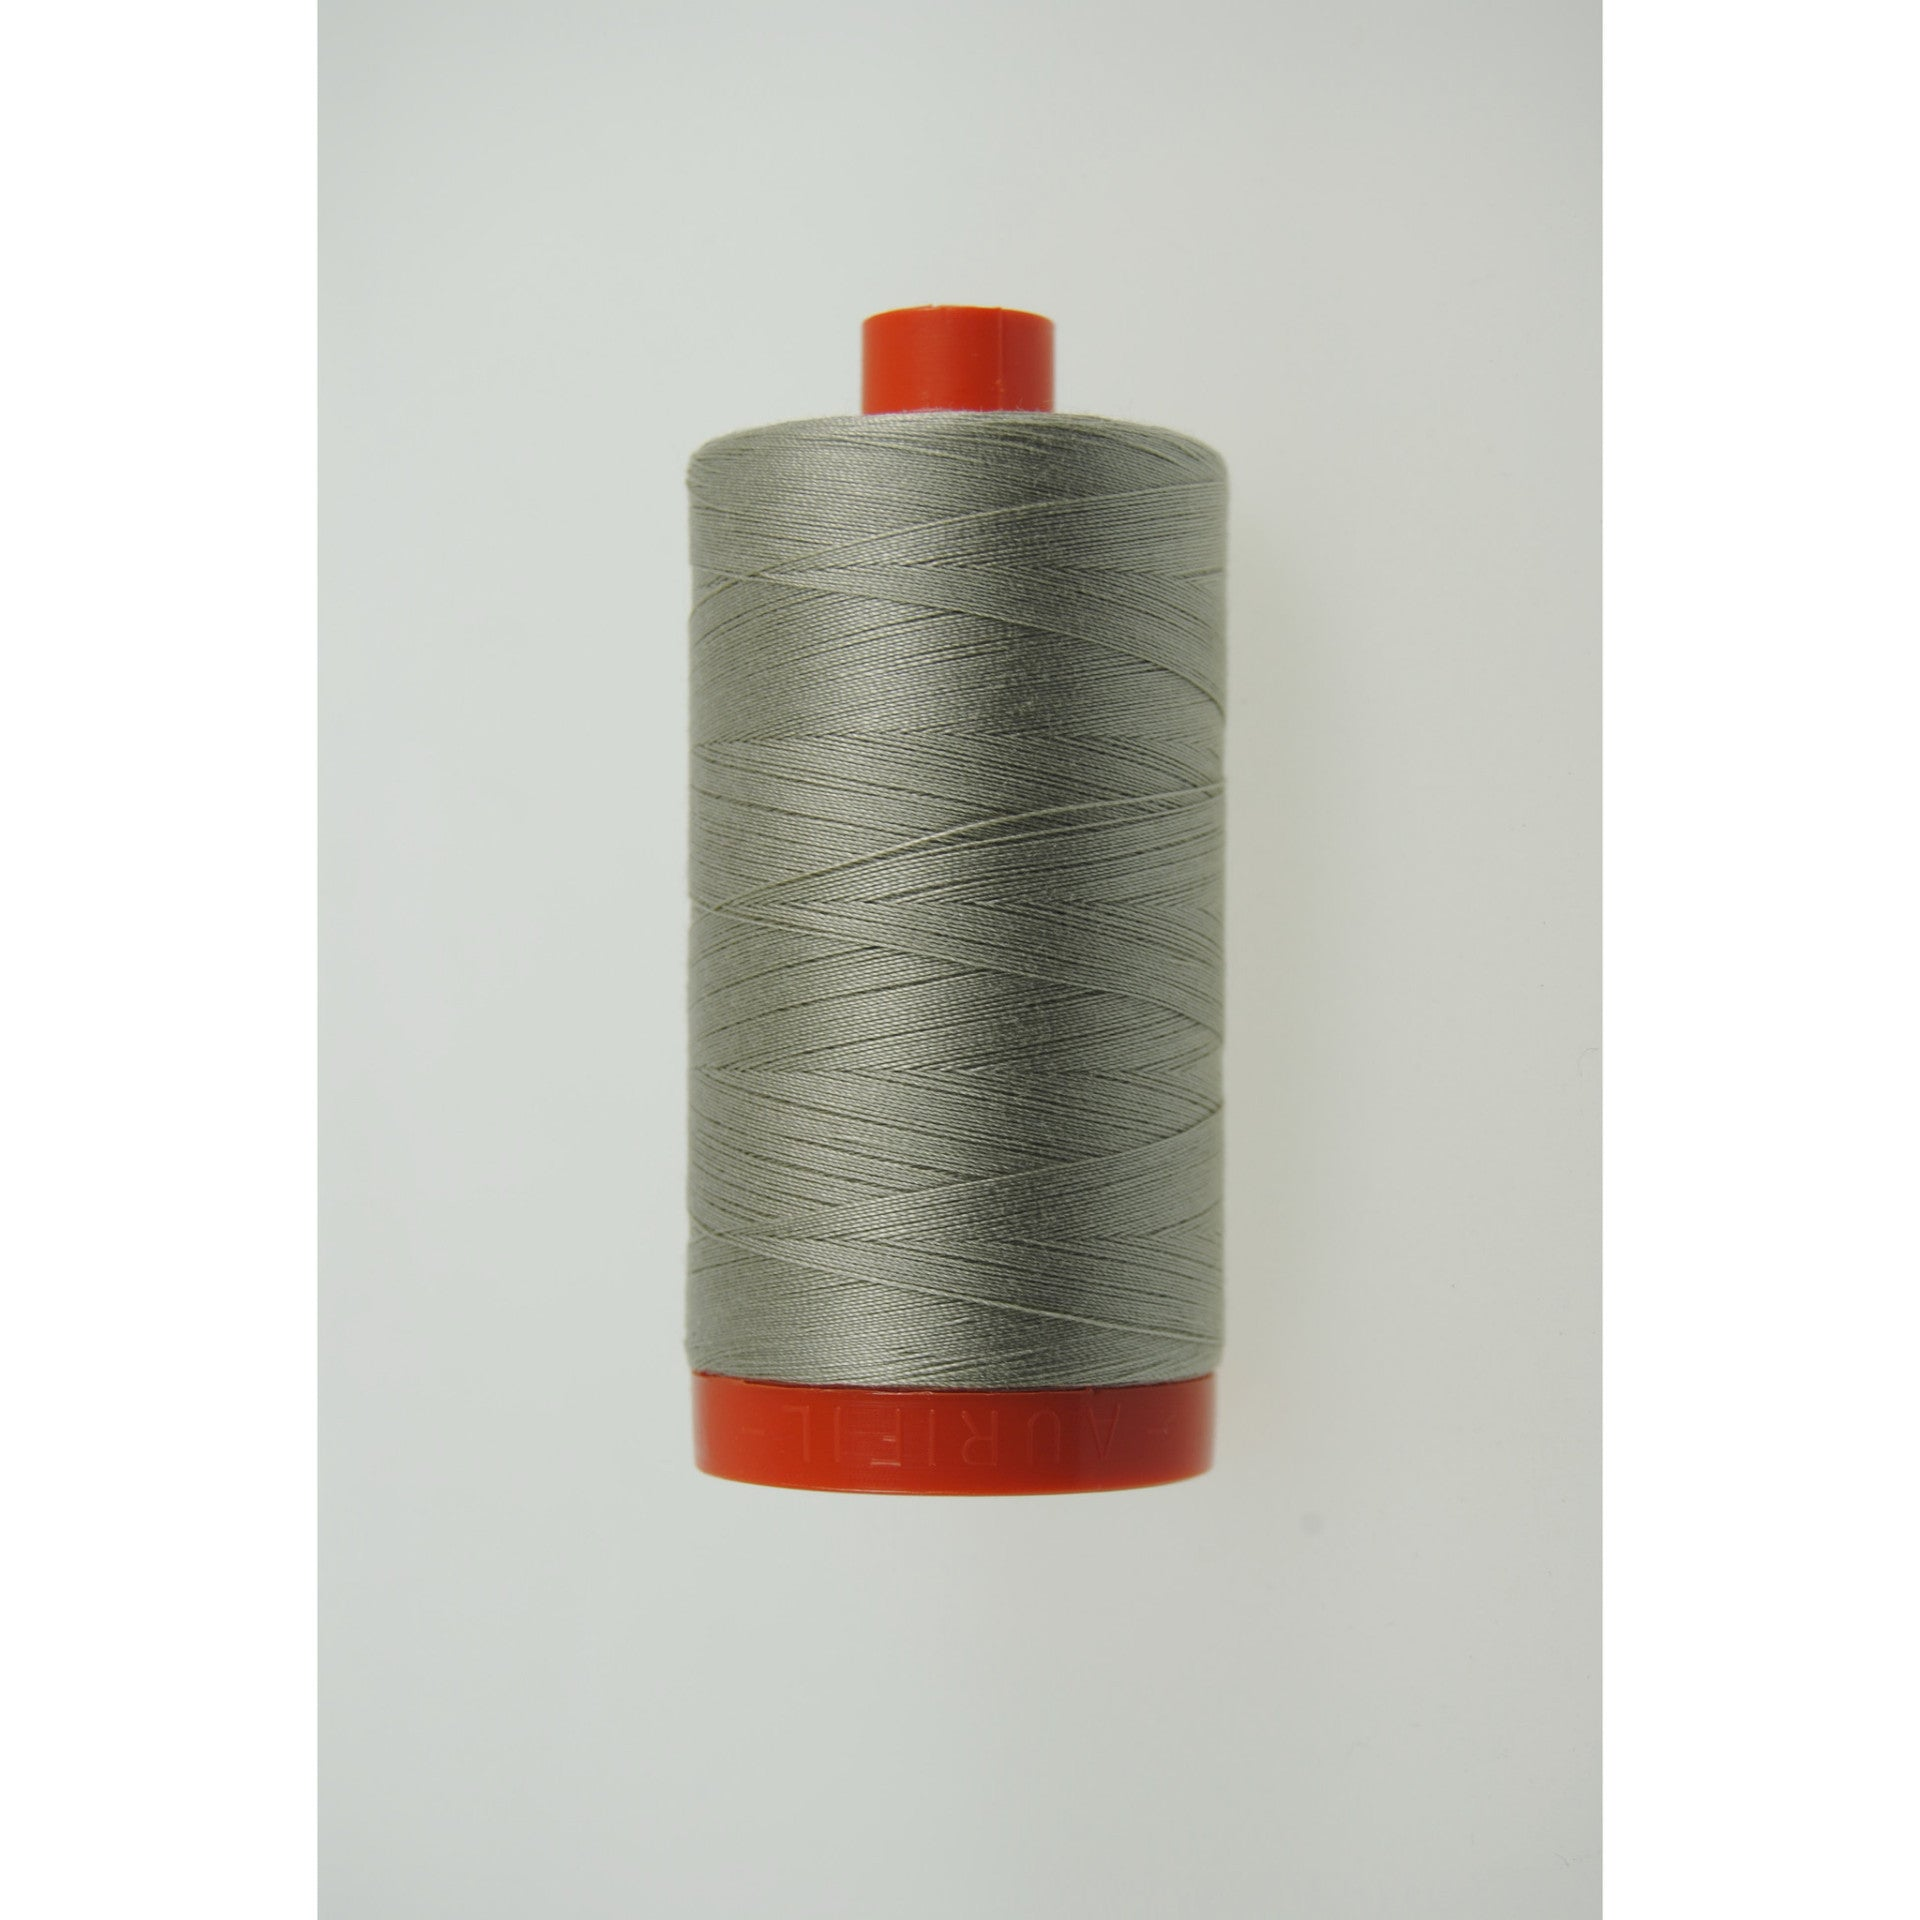 Aurifil 50 thread light grey (5021)